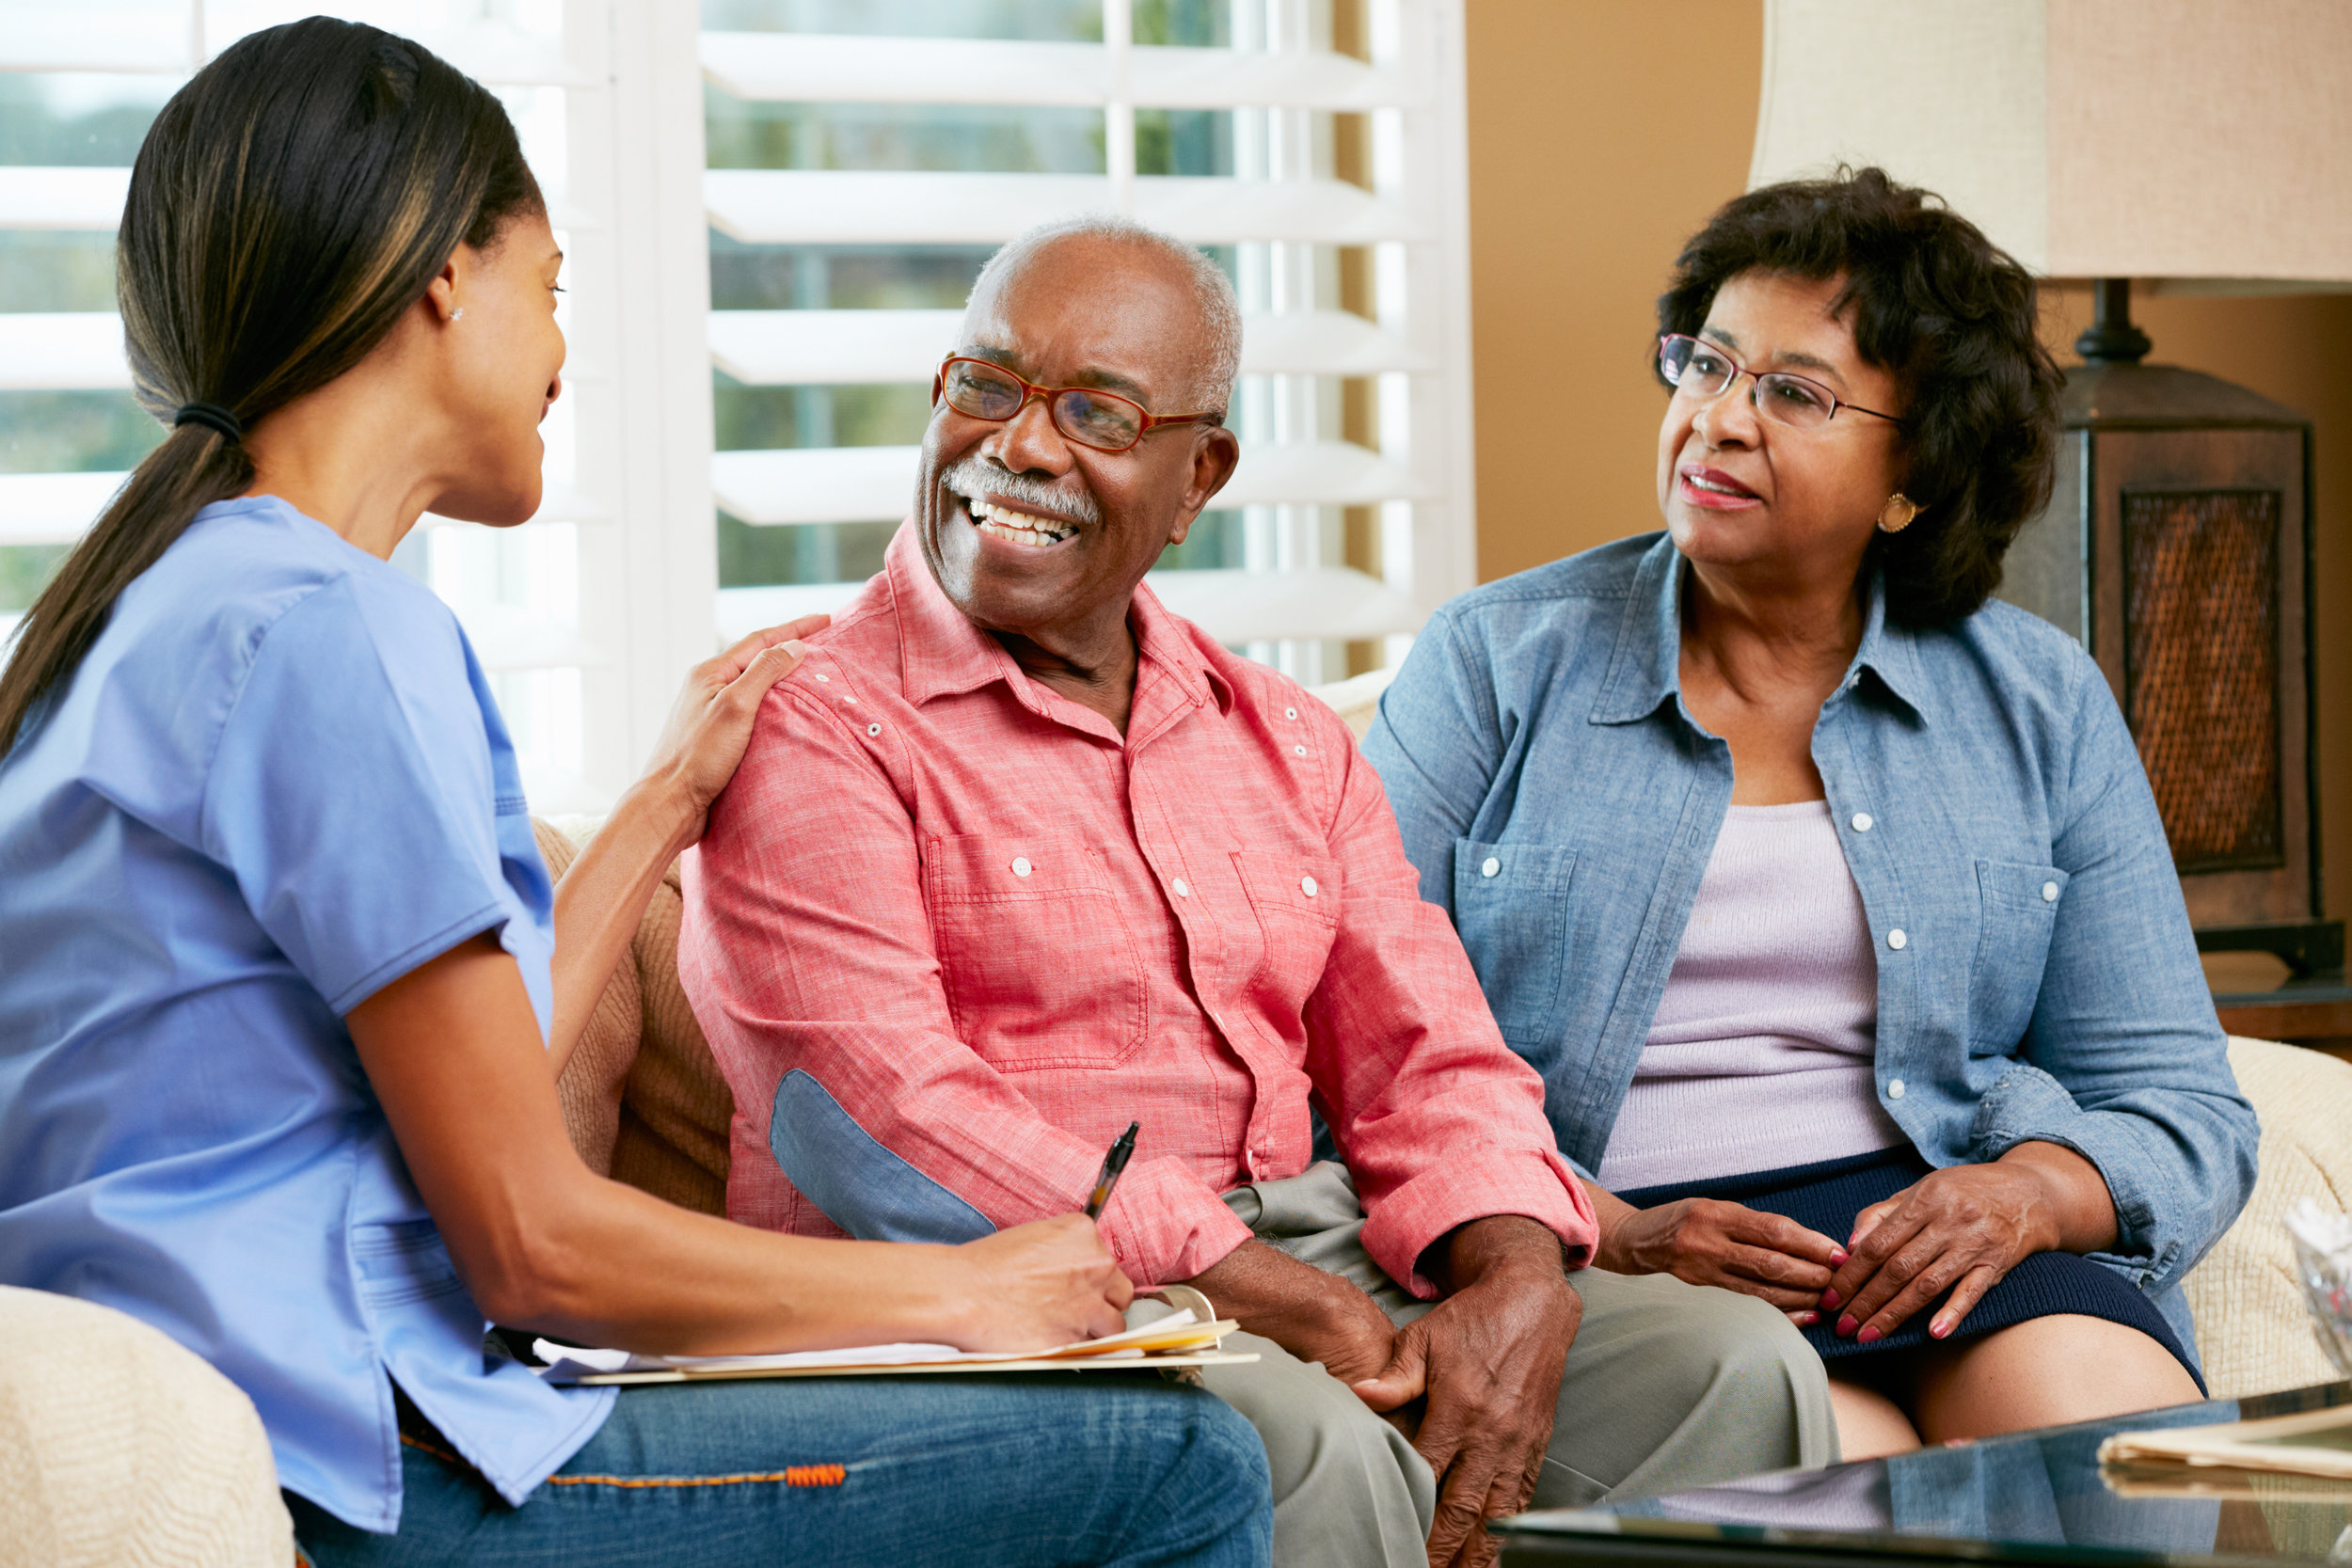 Convenient in-home consultations available - Click here to learn more and book an appointment.